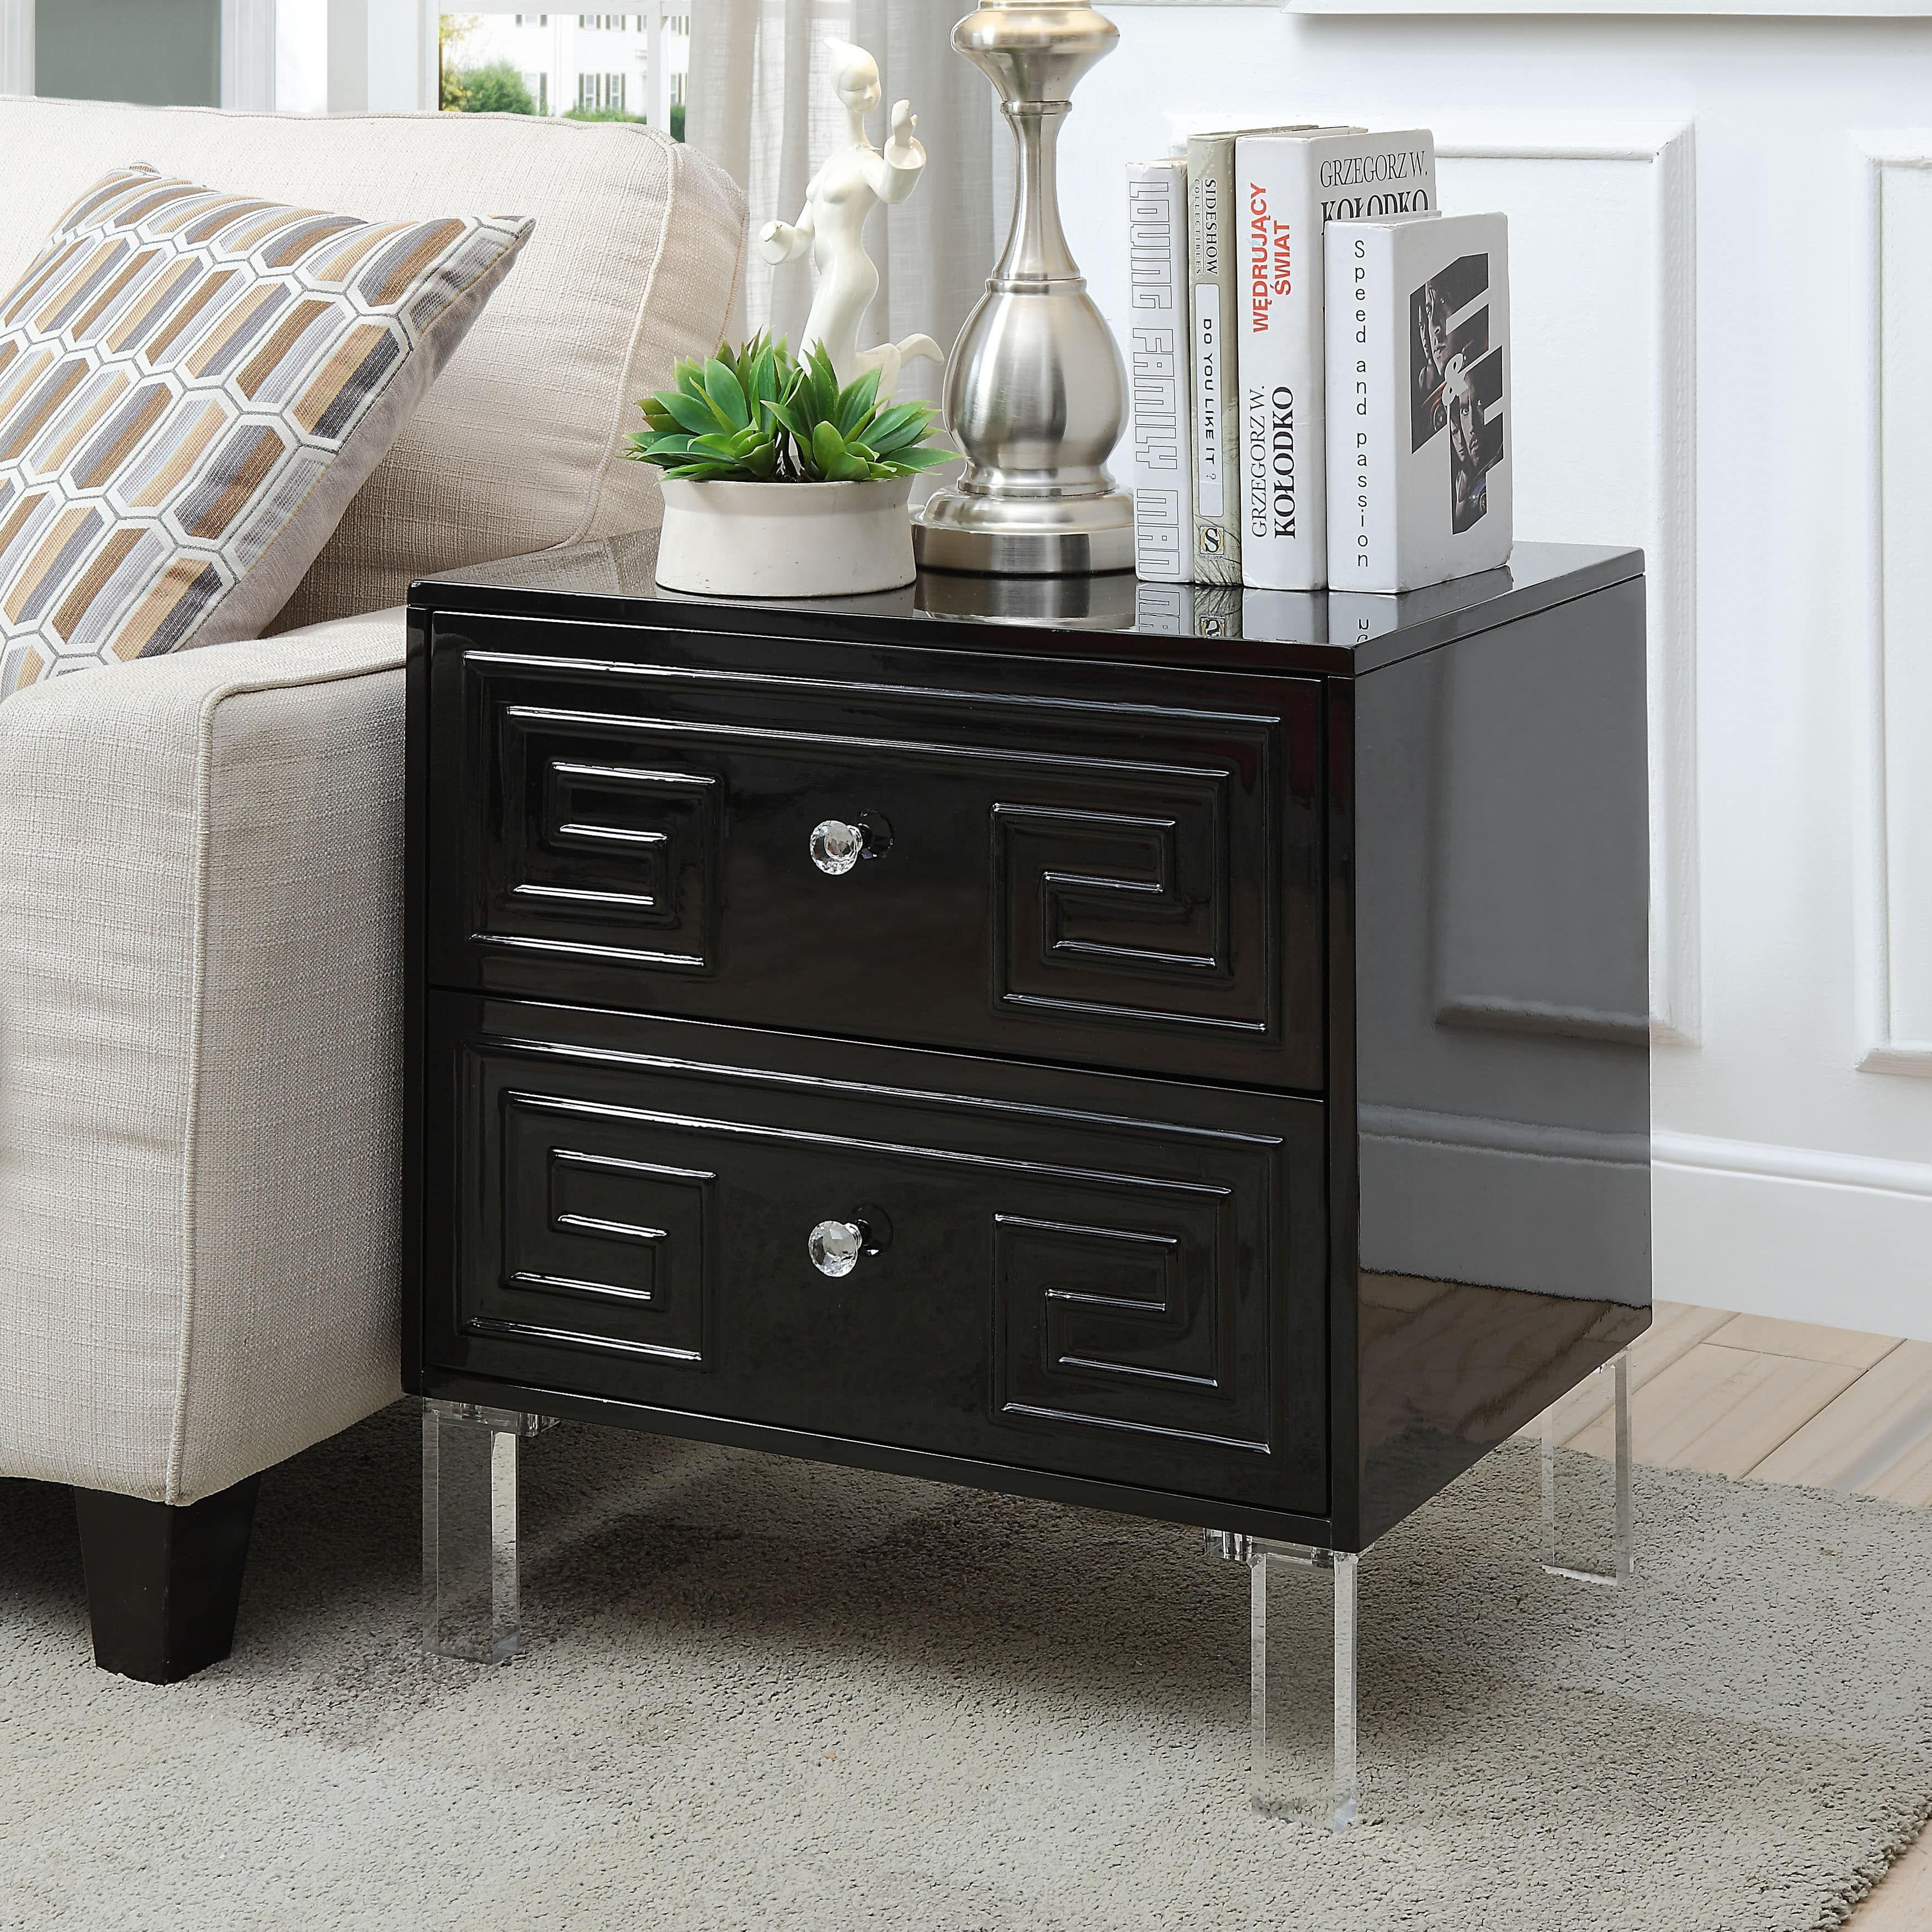 Furniture Of America Lelani Wood And Acrylic Contemporary 2 Drawer Side Table